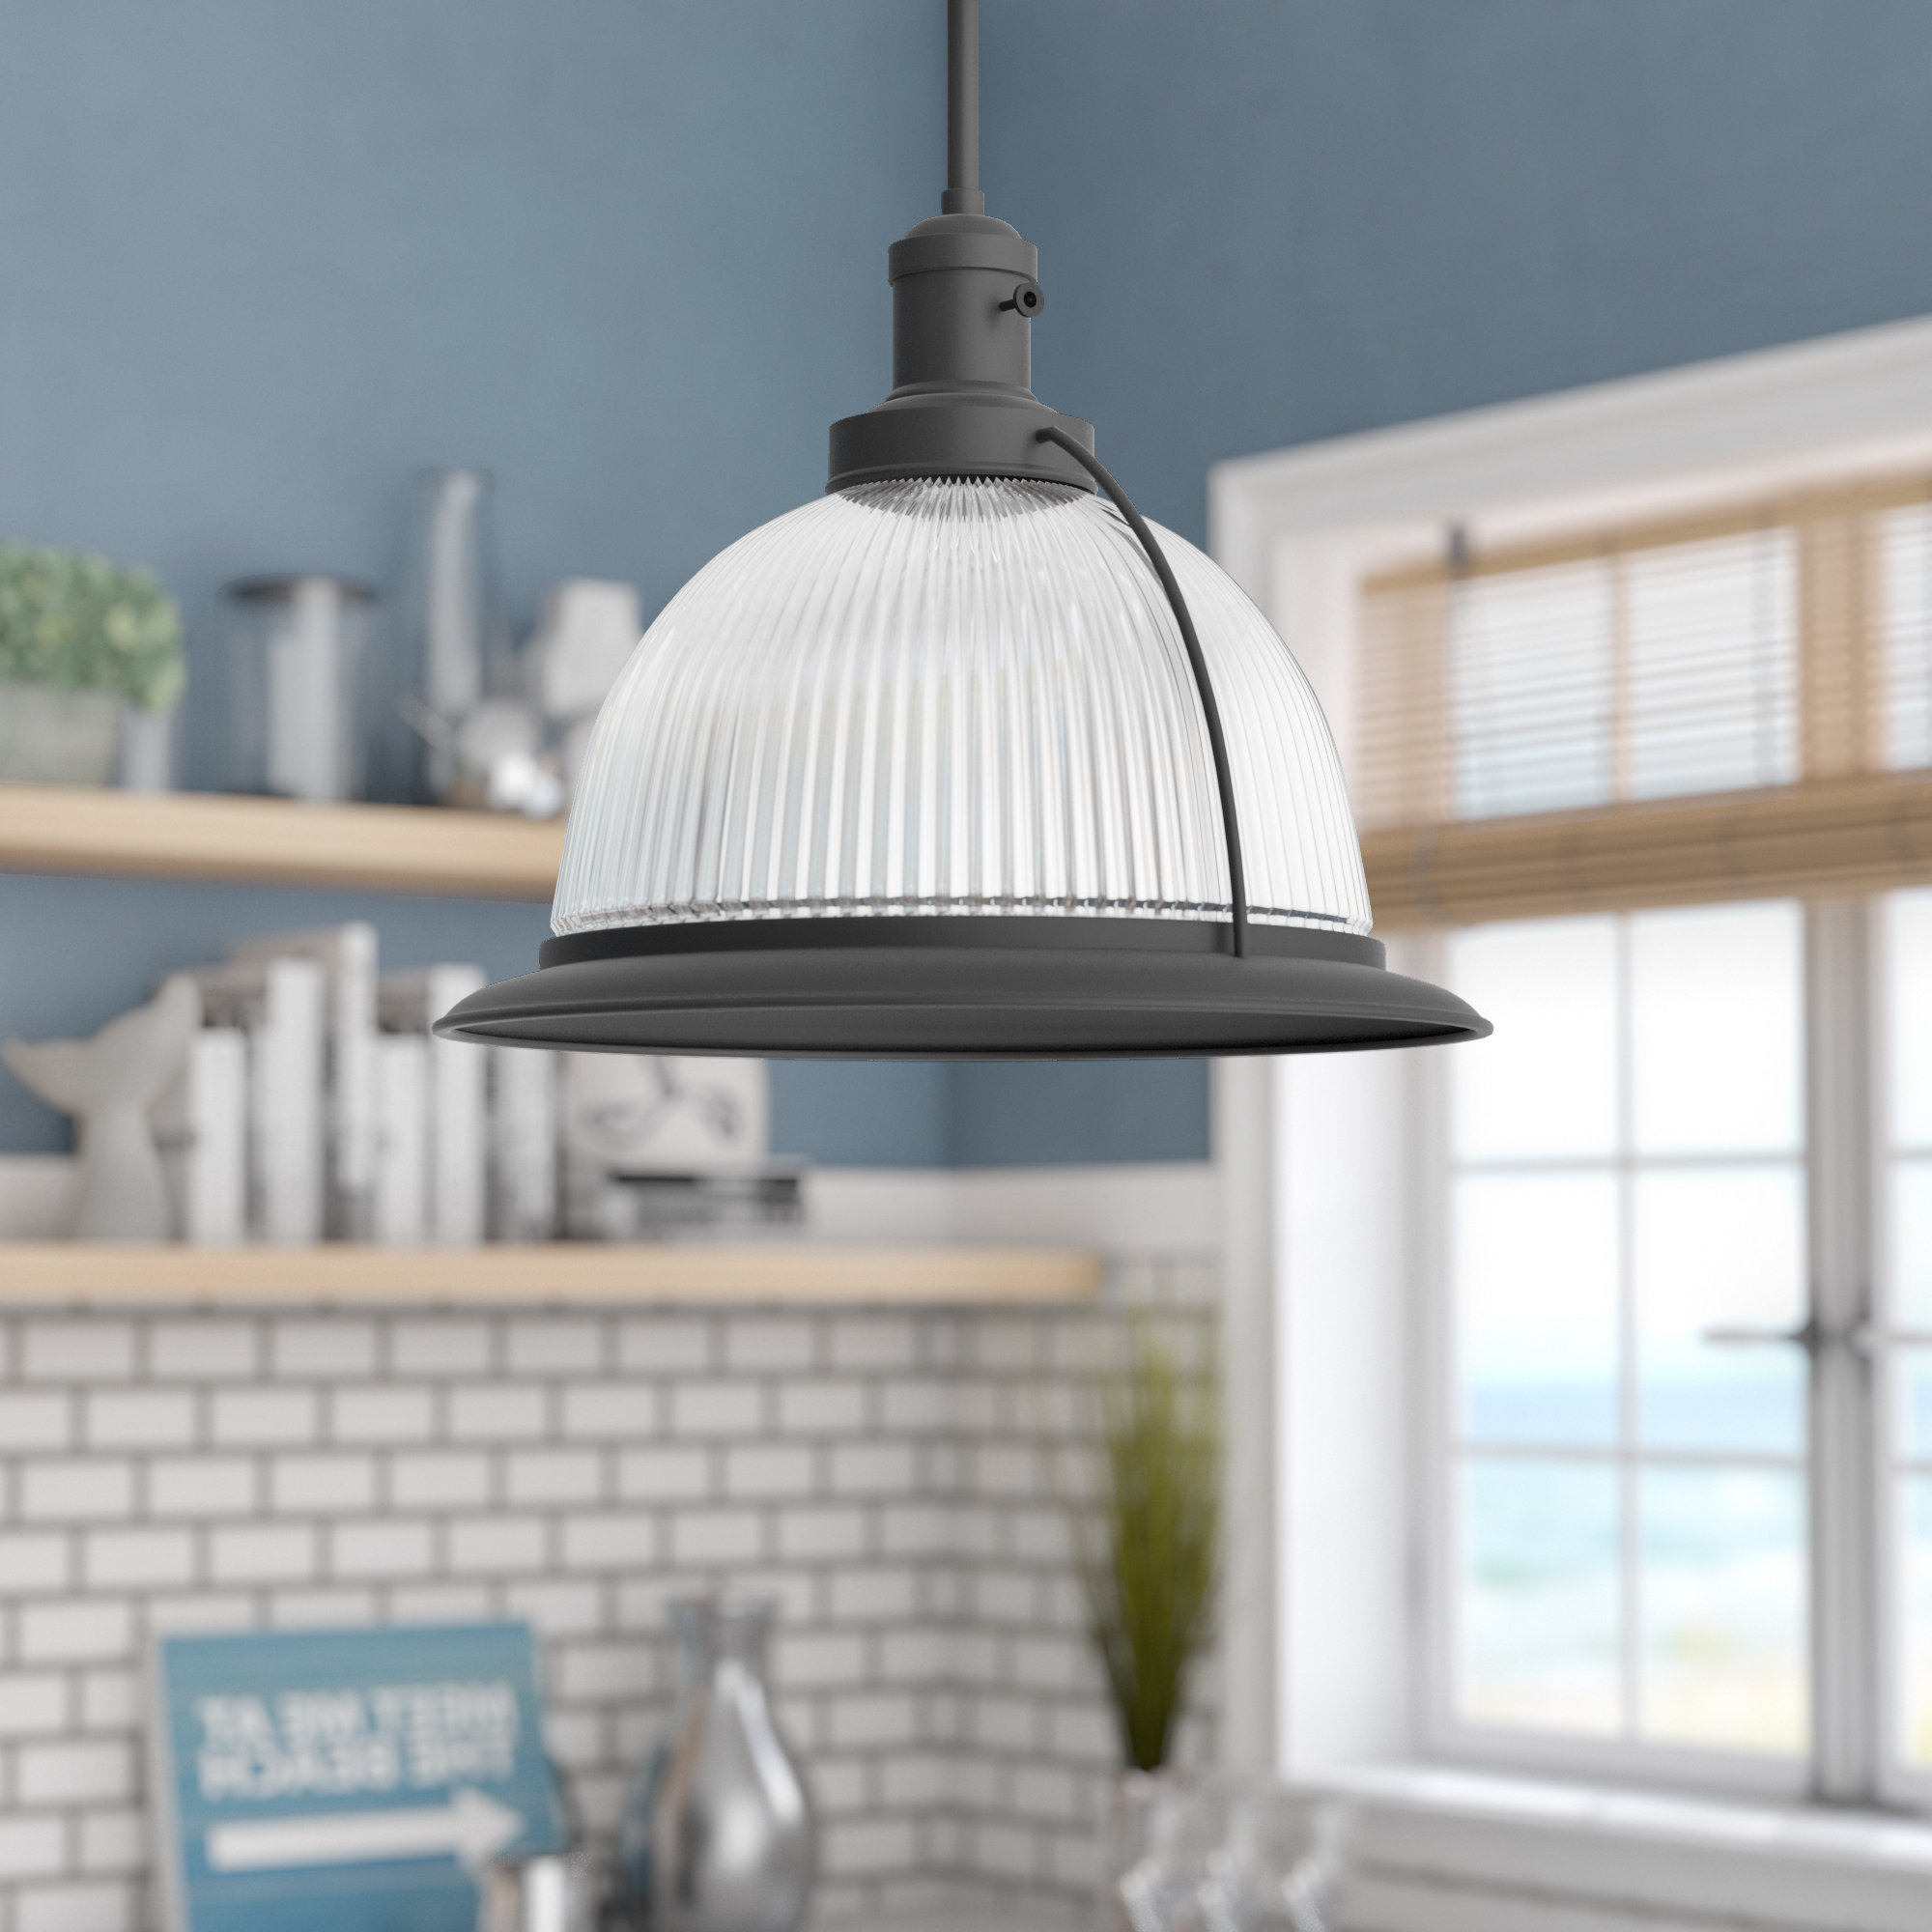 Famous Granville 3 Light Single Dome Pendants Within Delway 1 Light Single Dome Pendant (View 7 of 20)